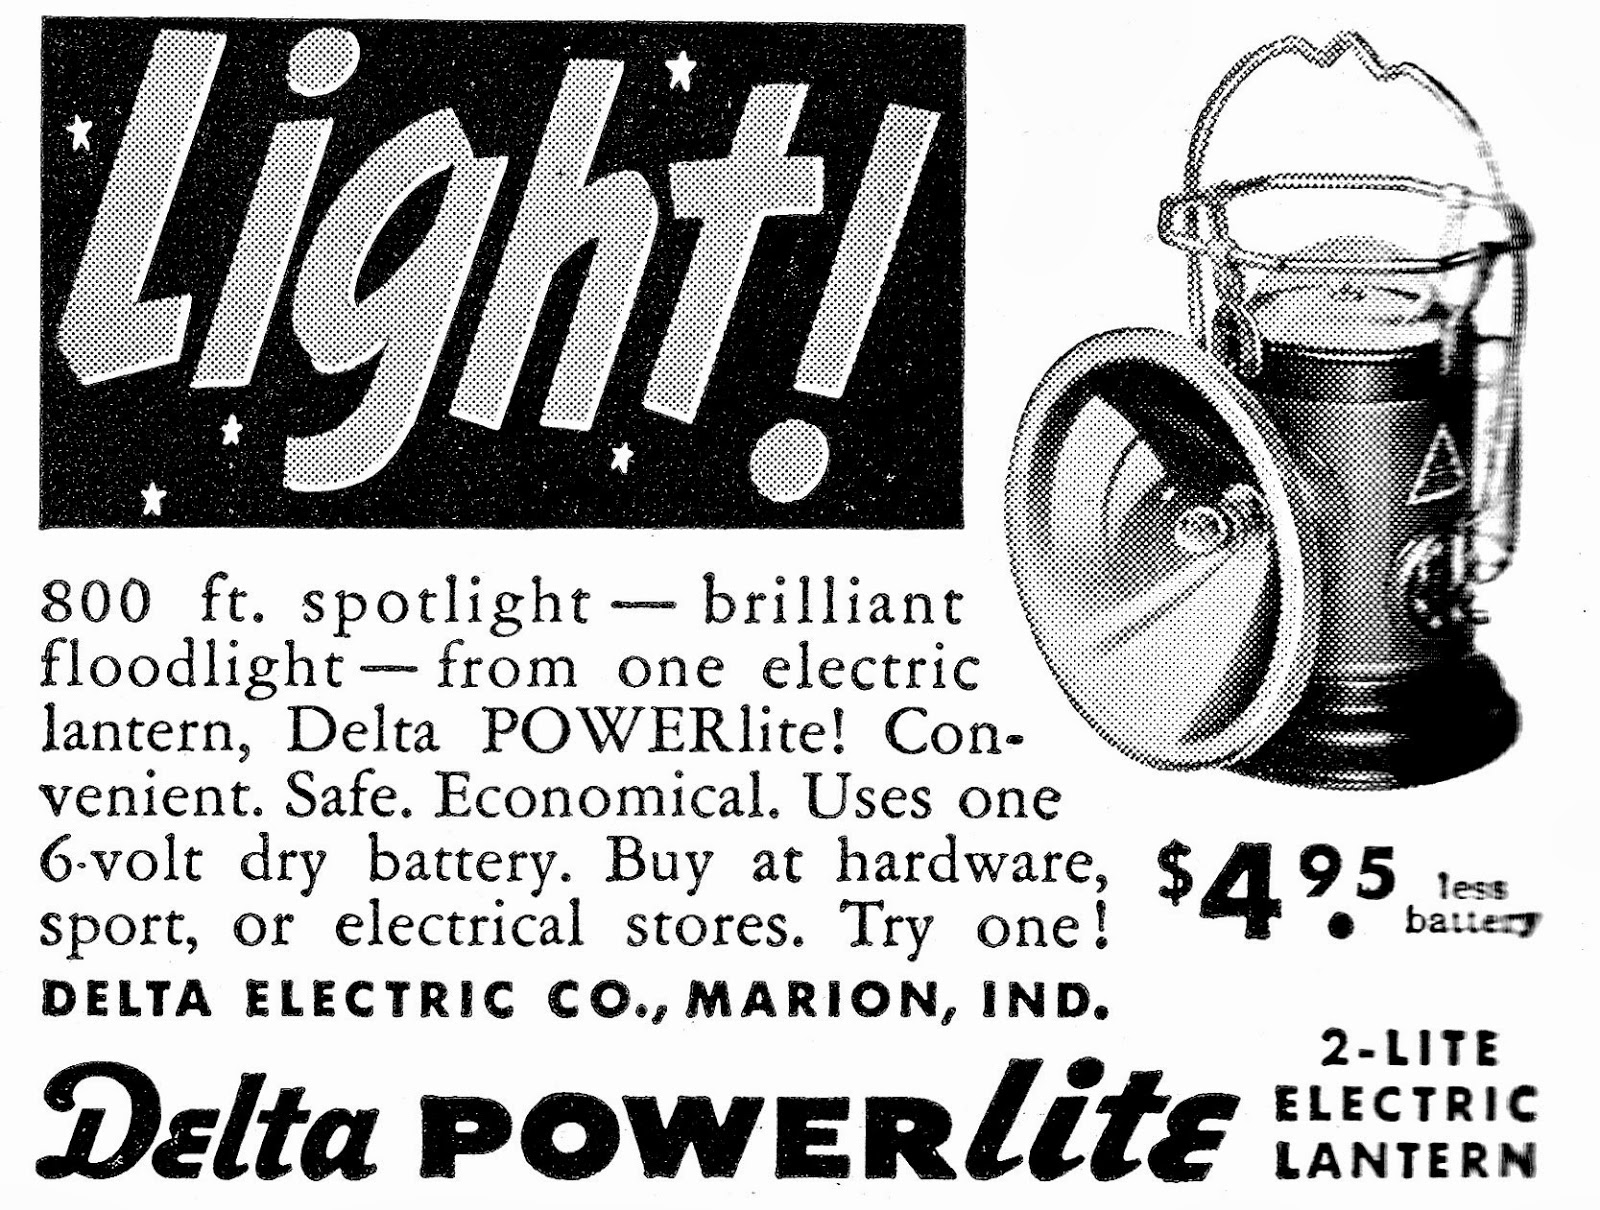 Delta Electric Co., Marion, Ind.